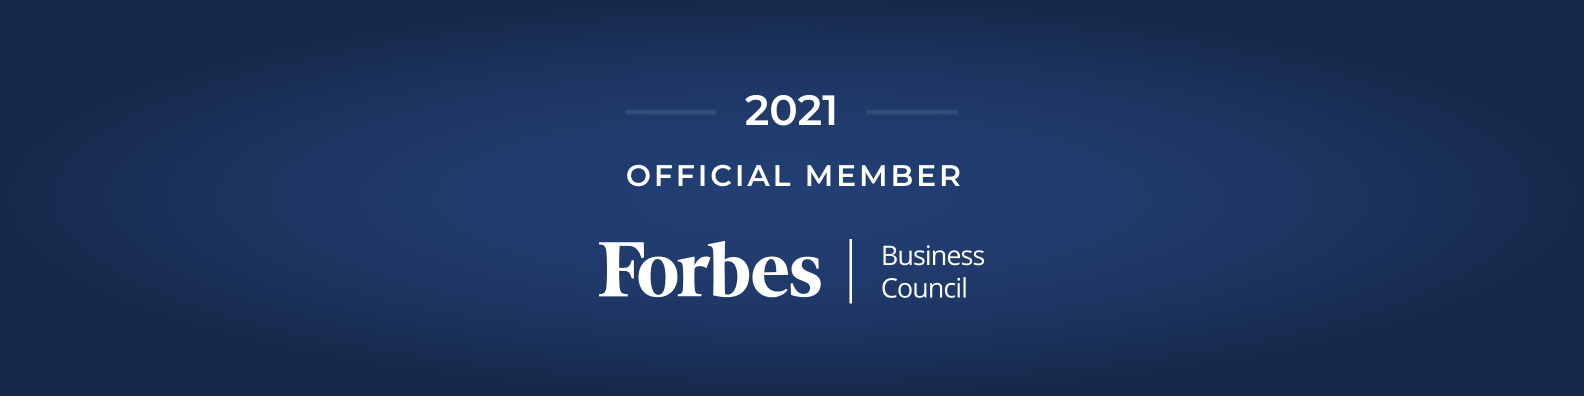 Kelly Ann Winget - Founder of Alternative Wealth Partners, LLC Accepted Into Forbes Business Council